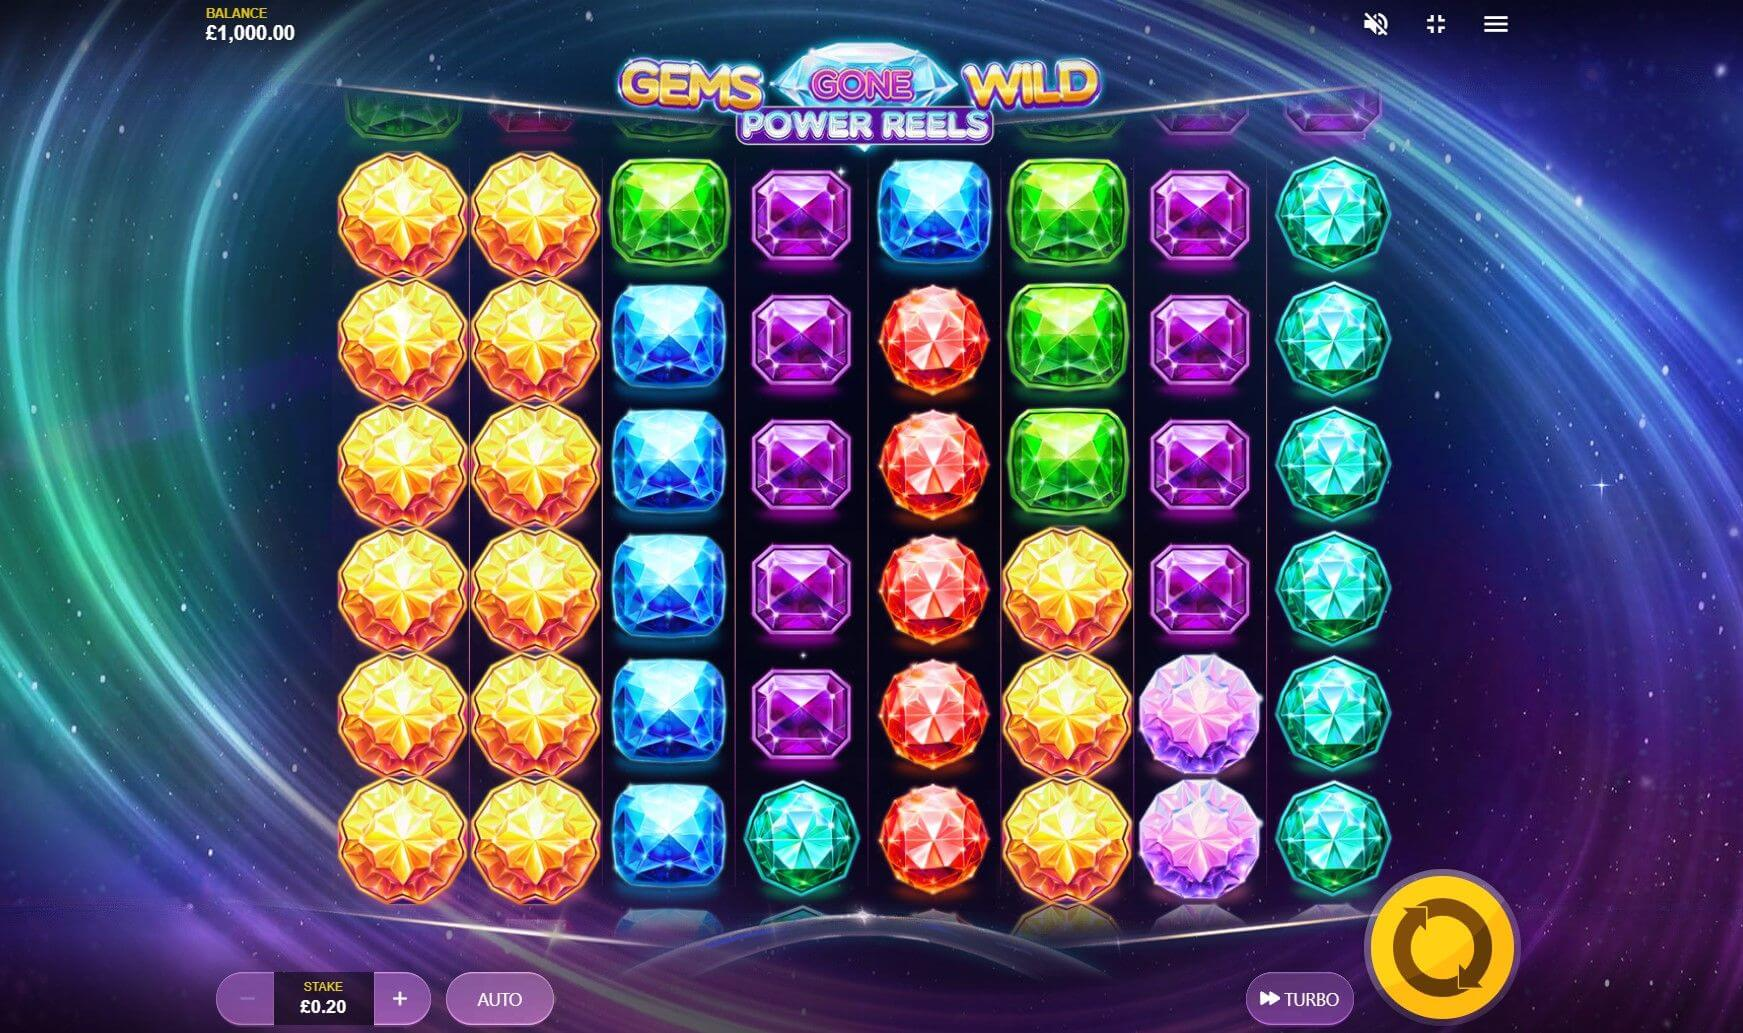 Gems Gone Wild Power Reels Slot Bonus